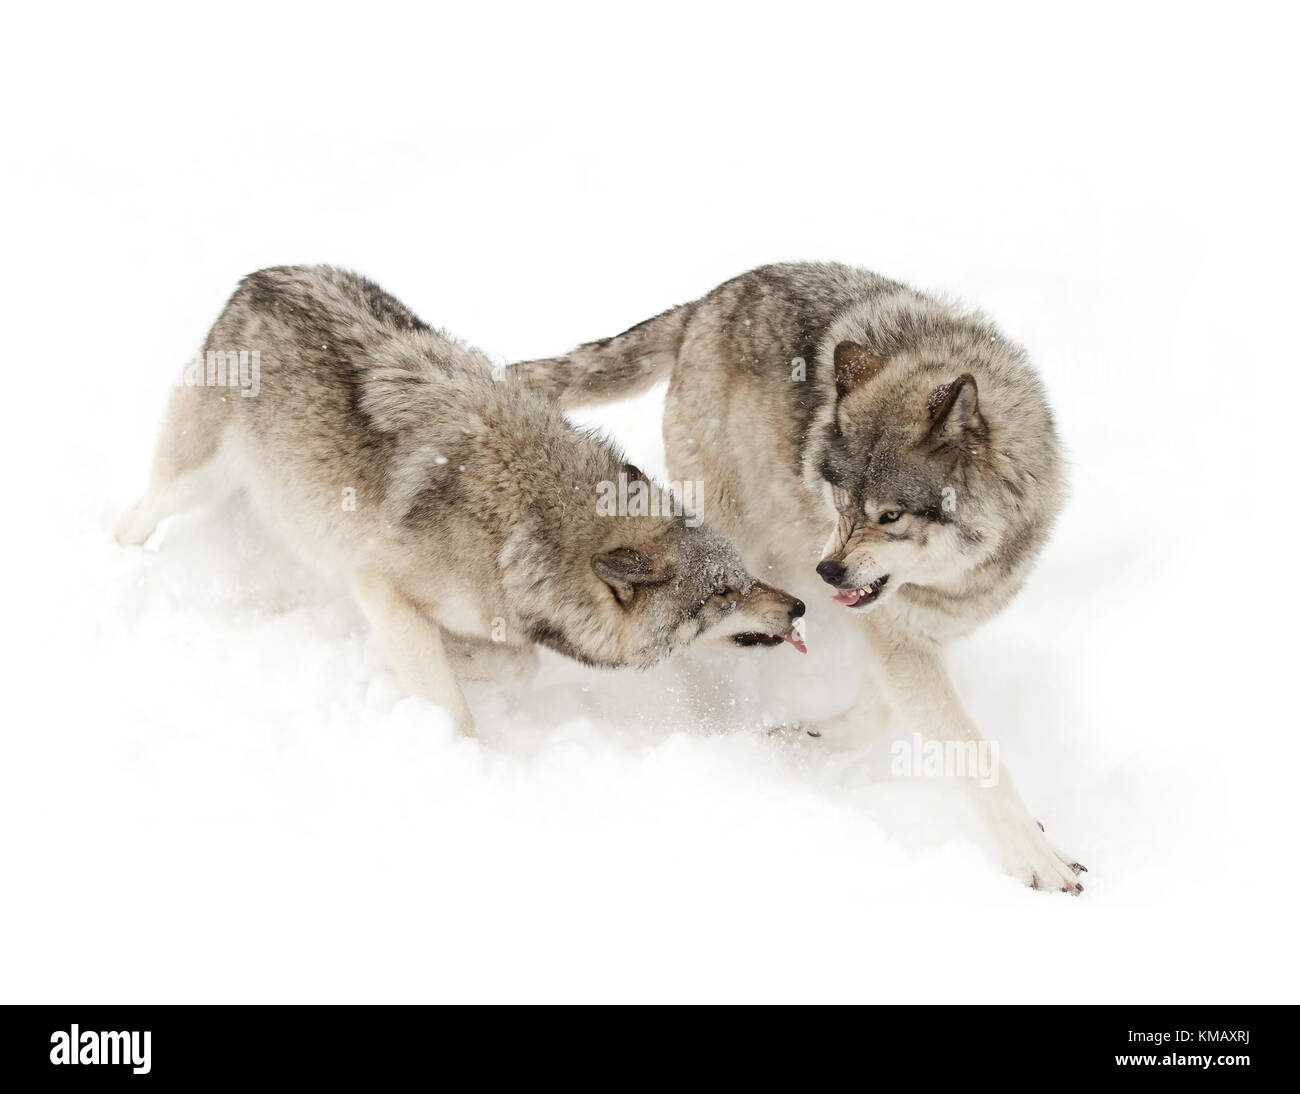 Timber wolves or Grey wolf (Canis lupus) playing with each other in winter in Canada - Stock Image